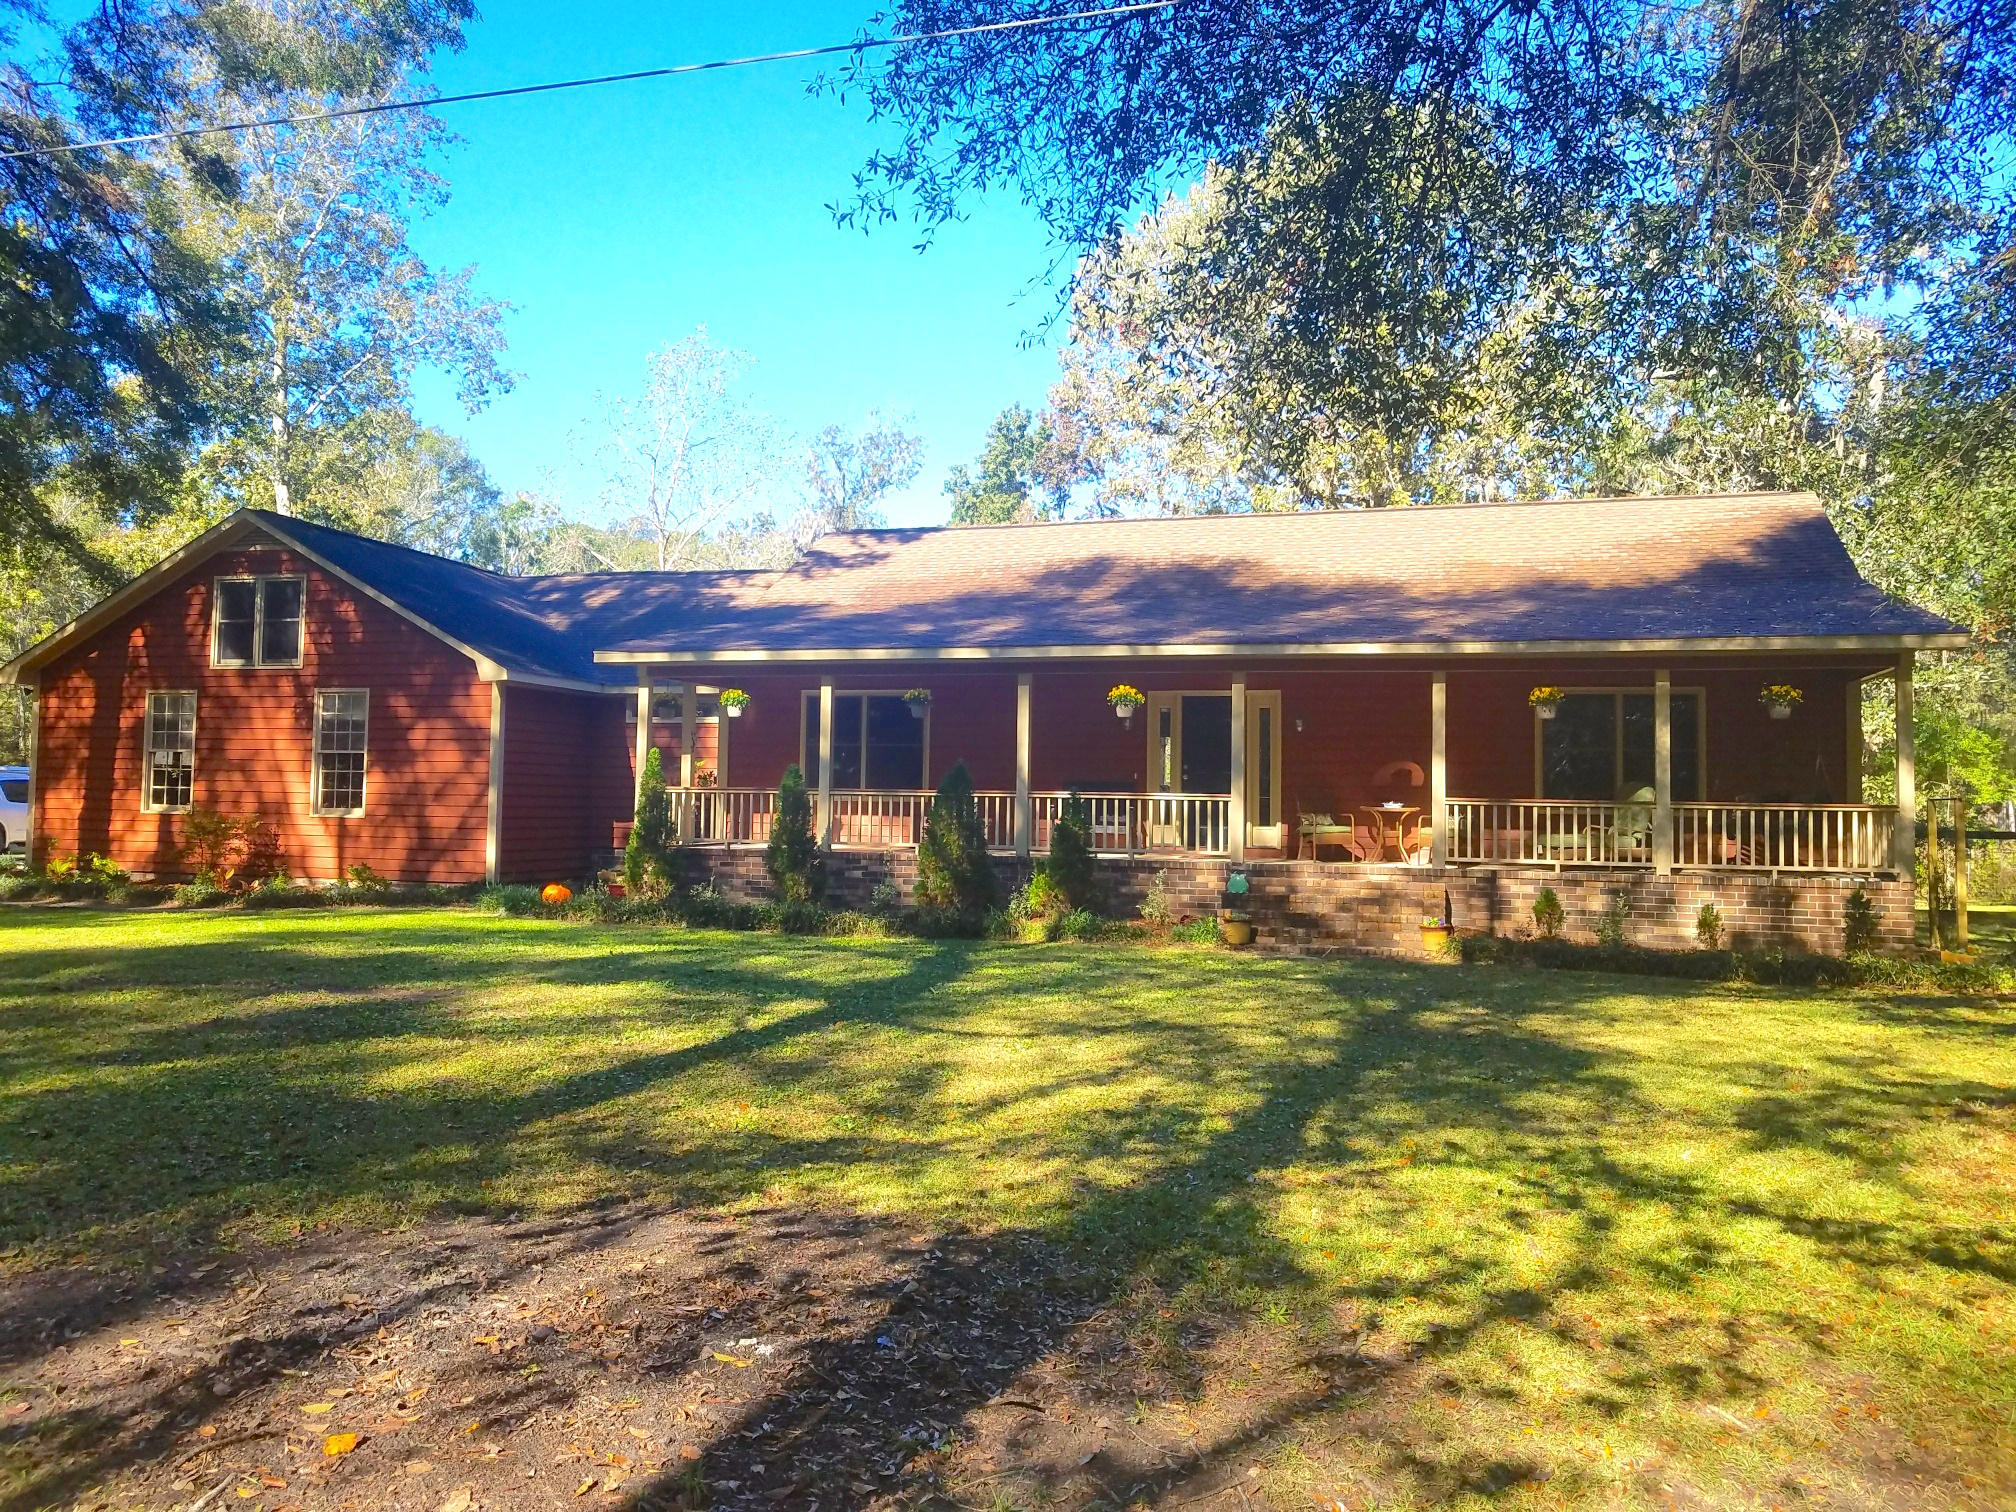 Photo of 3866 State Rd S-10-1634, Johns Island, SC 29455